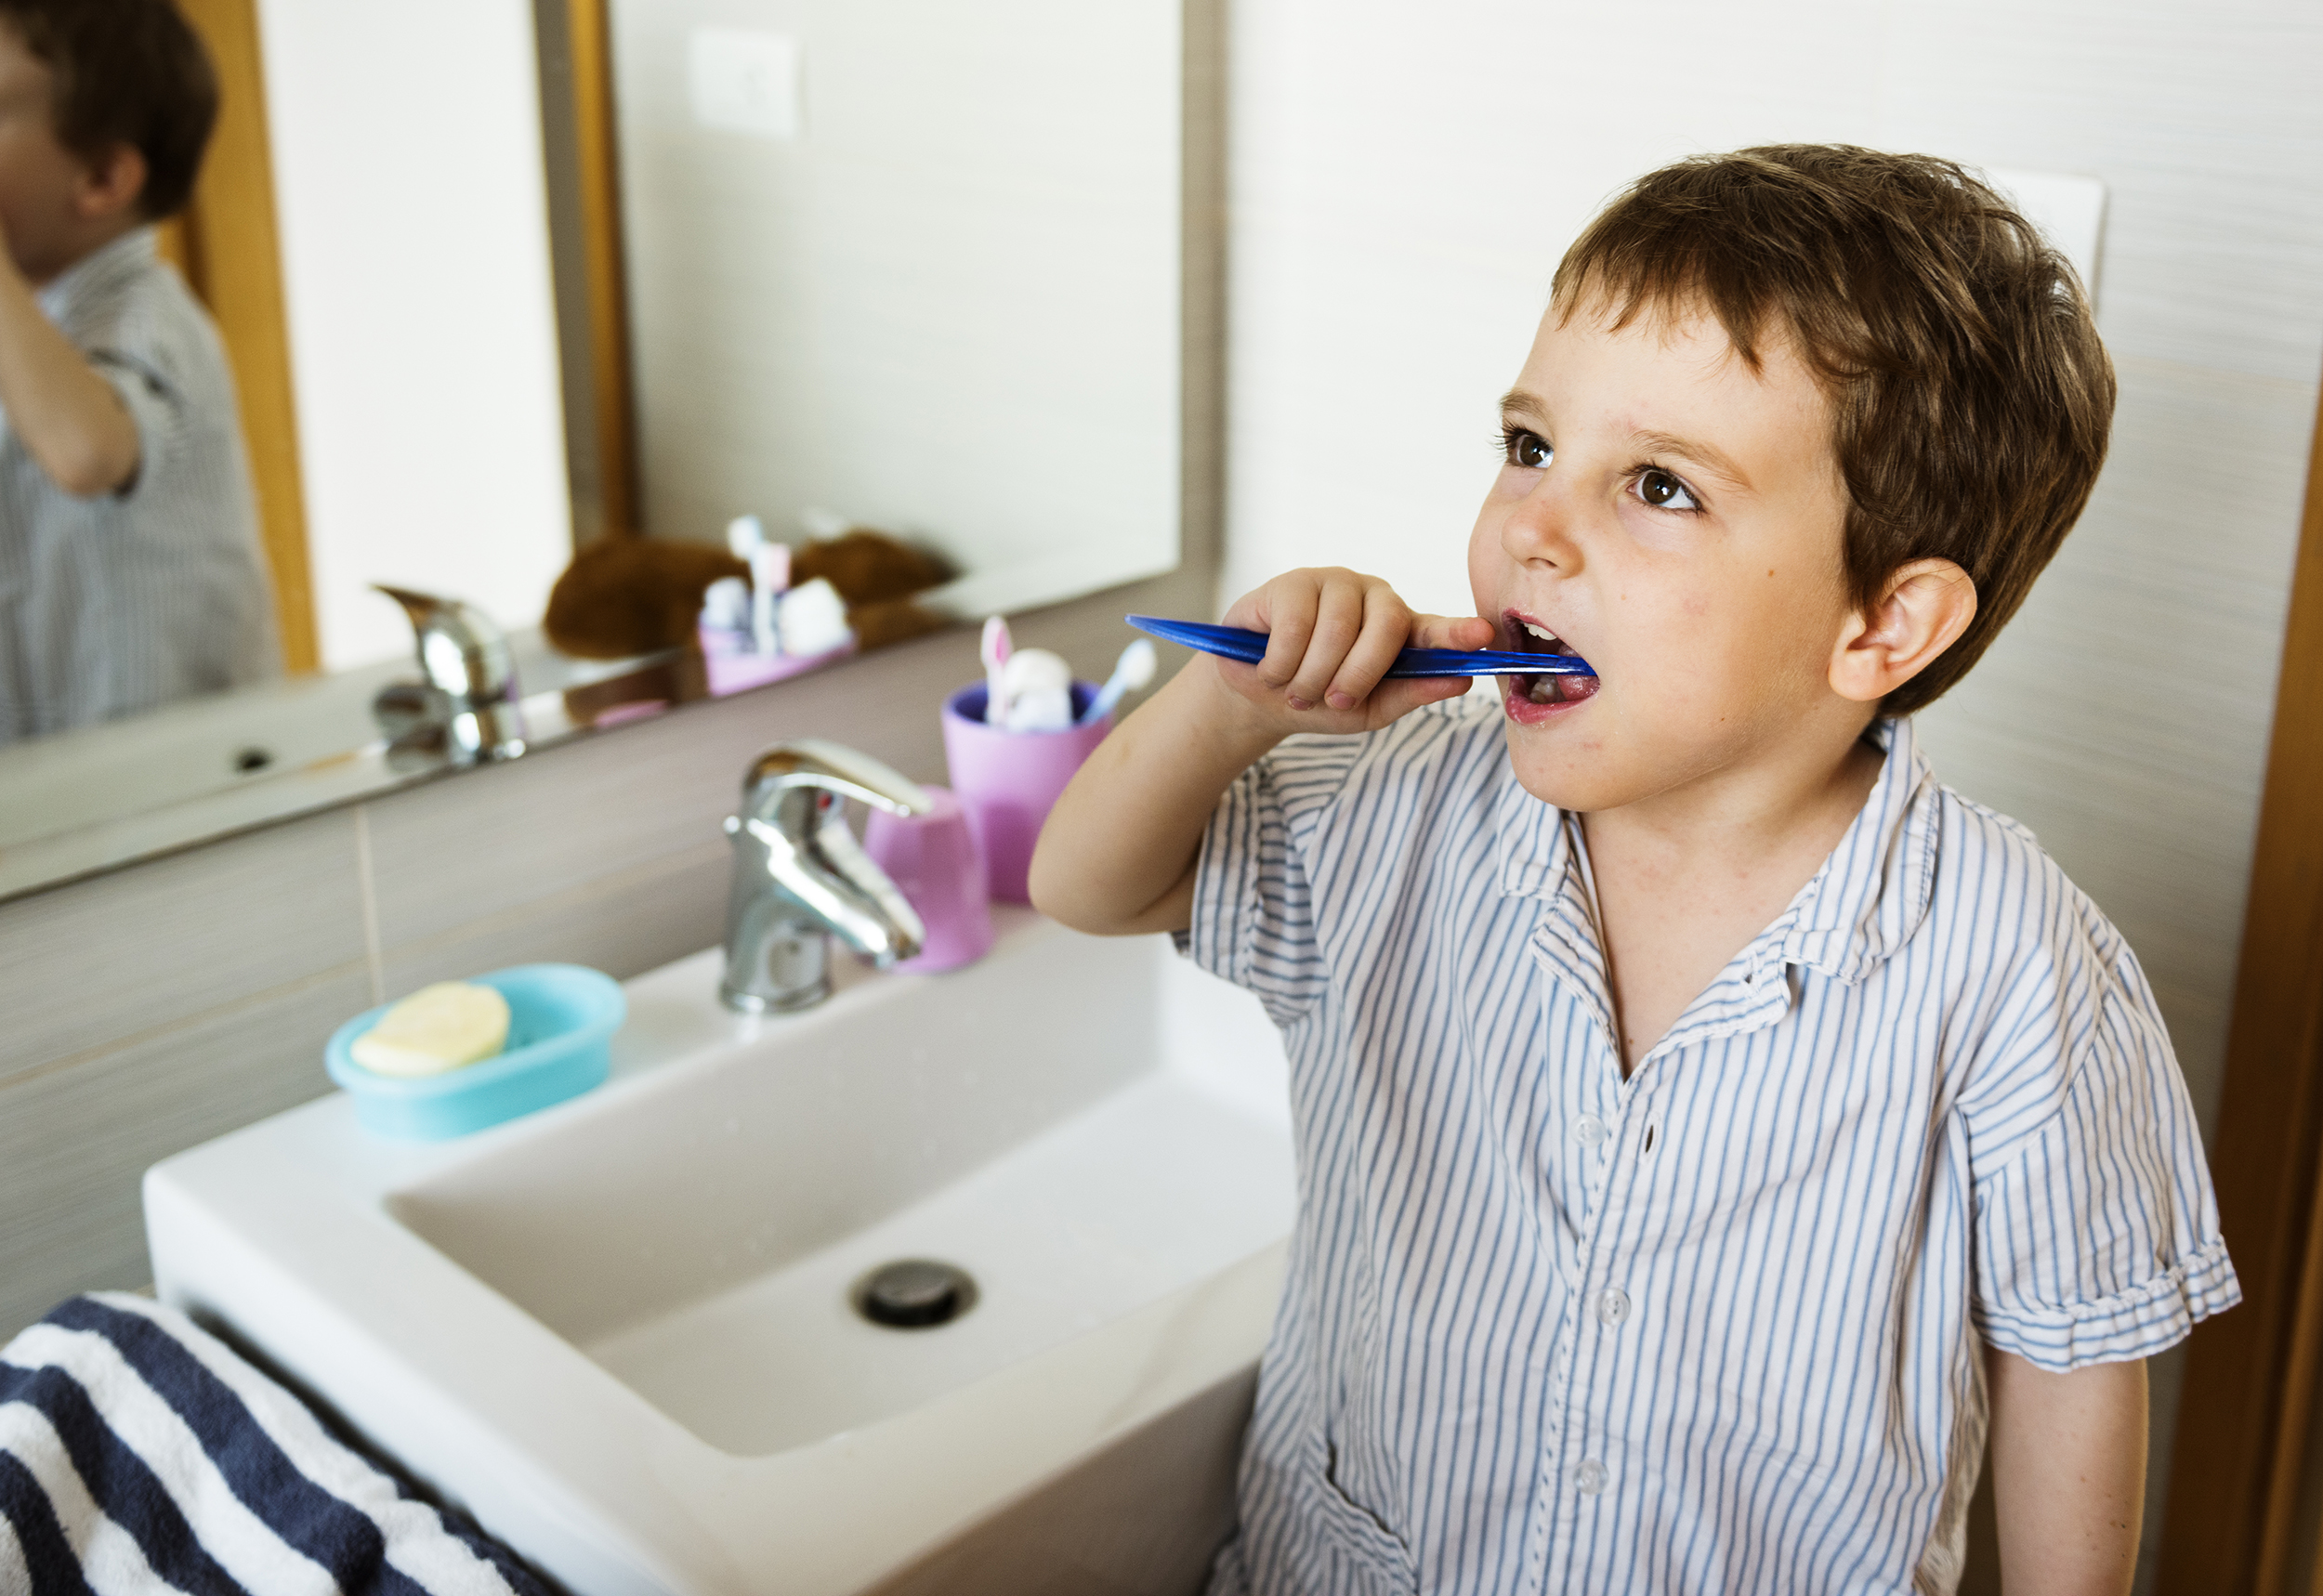 a young boy brushing his teeth next to the bathroom sink using all natural toothpaste and mouthwash to reduce the symptoms of PANS and PANDAS pediatric condition